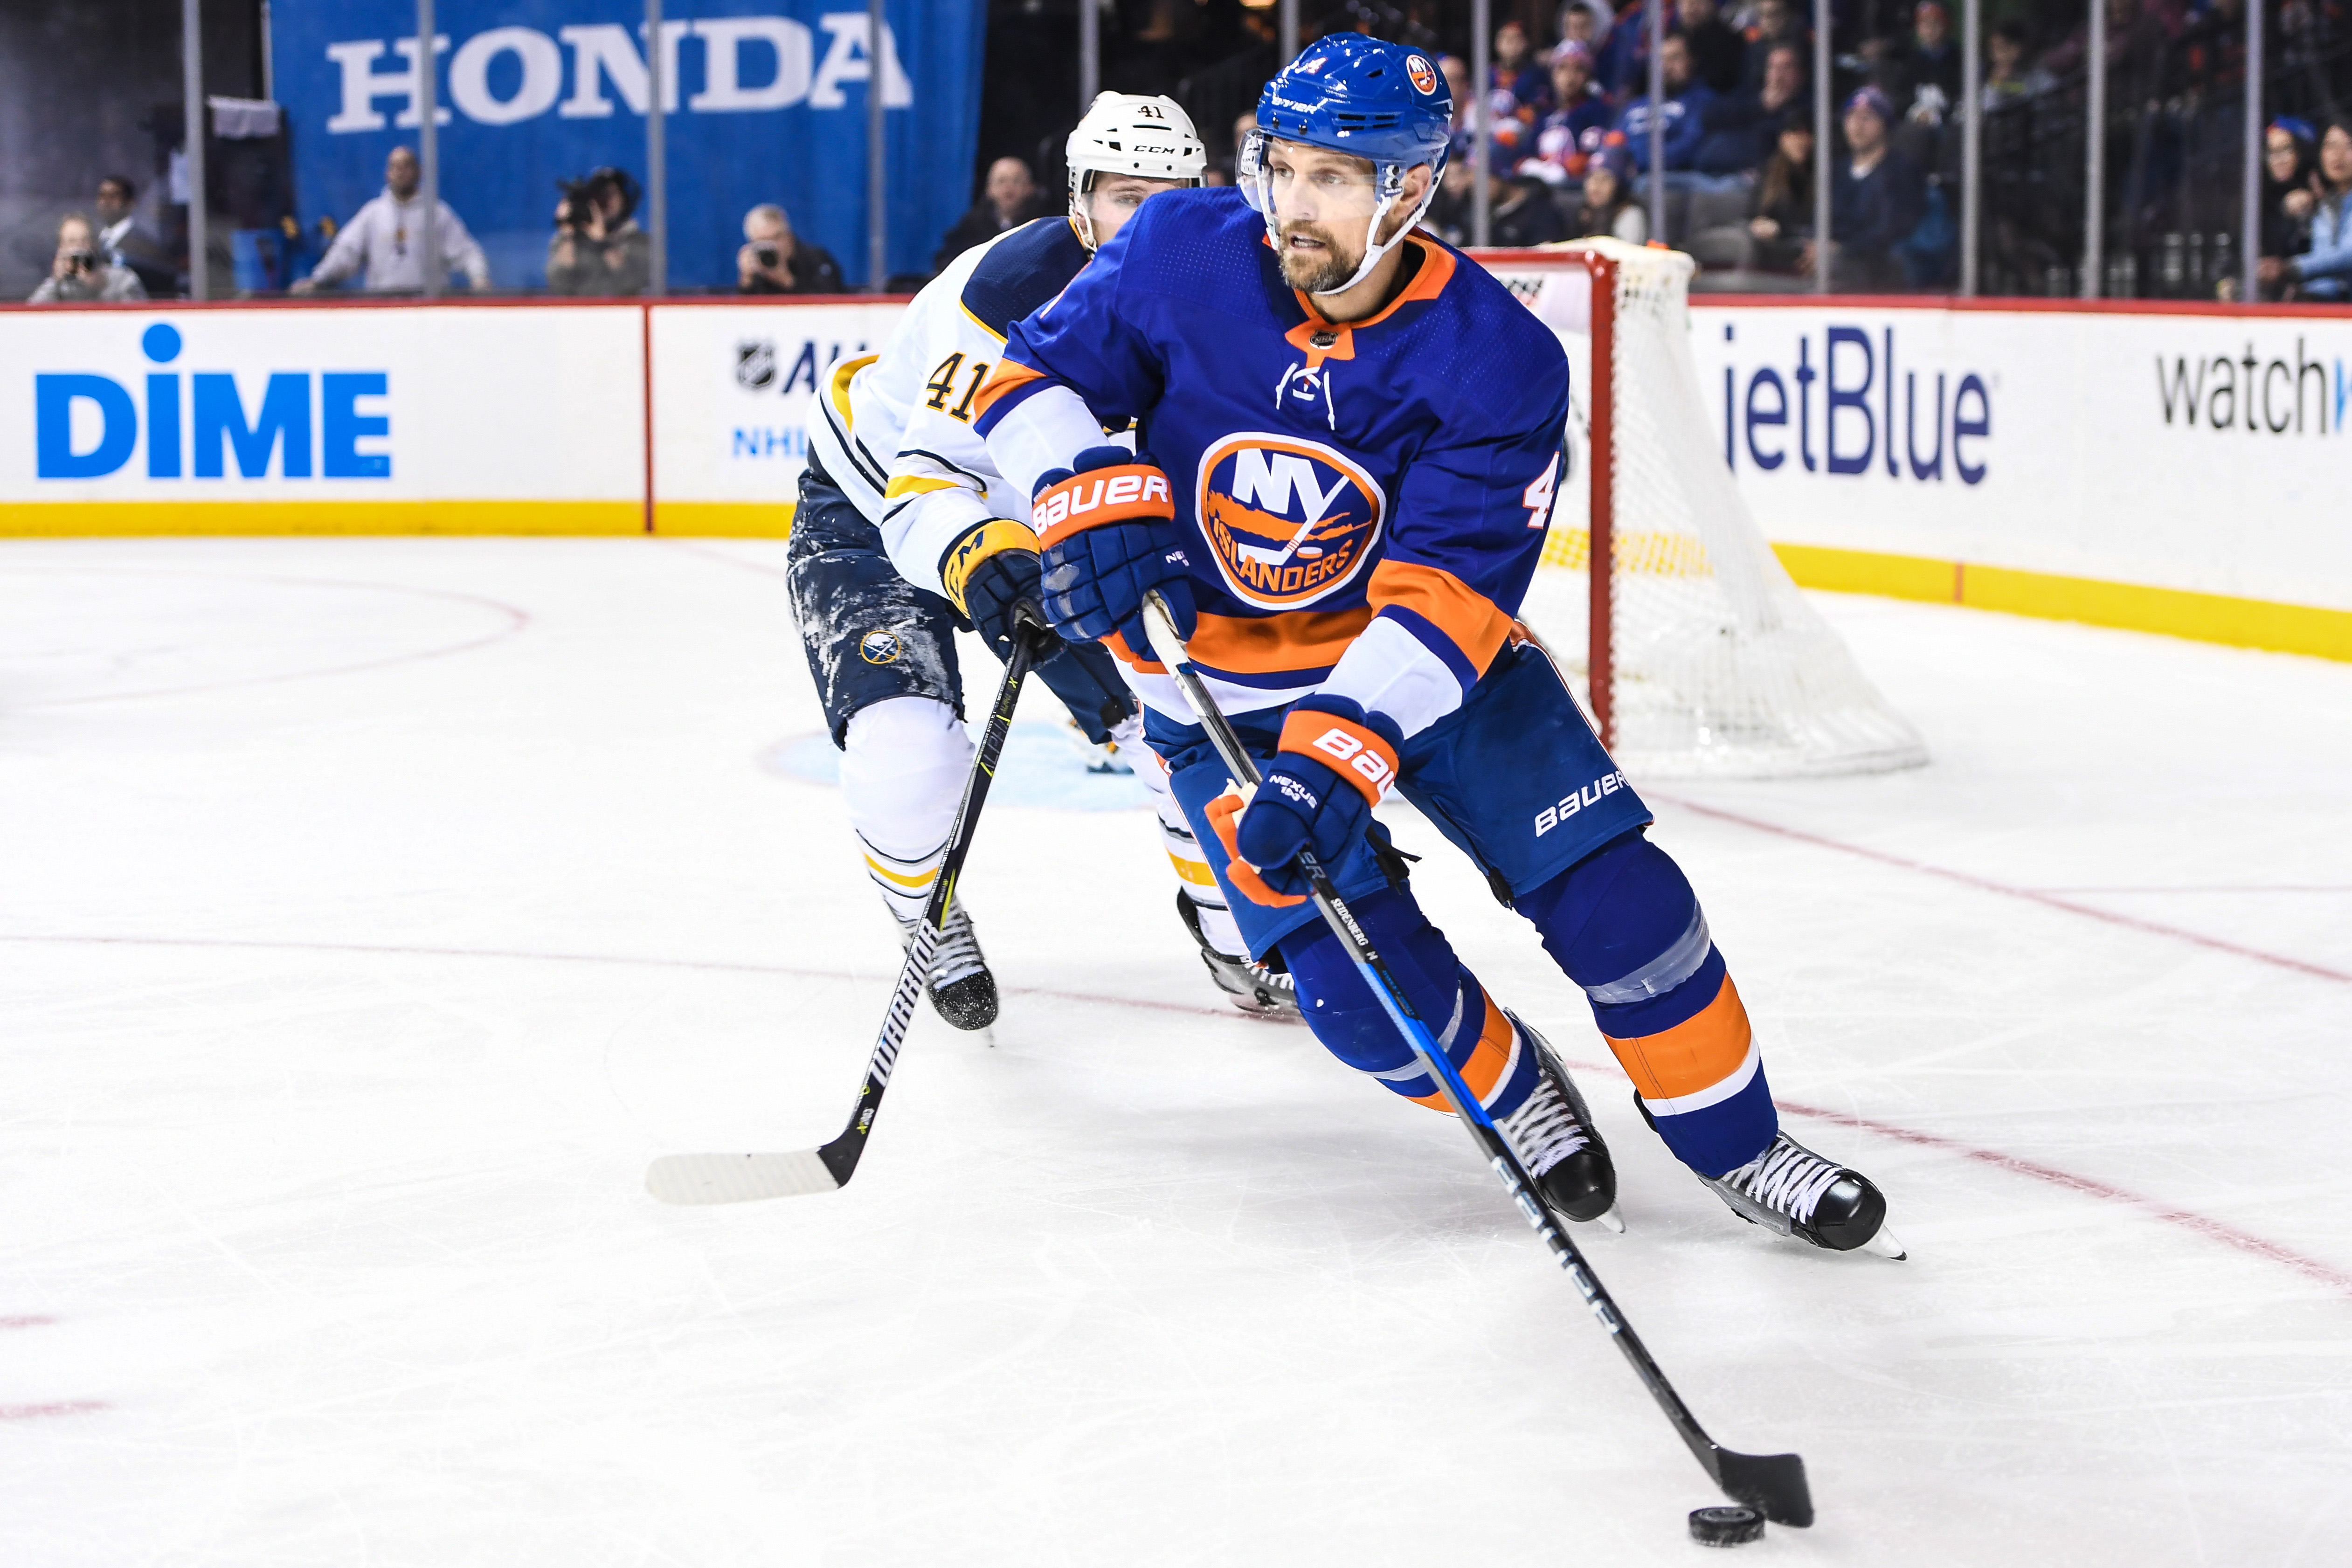 Dec 27, 2017; Brooklyn, NY, USA; New York Islanders defenseman Dennis Seidenberg (4) looks to make a pass defended by Buffalo Sabres defenseman Justin Falk (41) during the second period go the game between the New York Islanders and the Buffalo Sabres at Barclays Center. Mandatory Credit: Dennis Schneidler-USA TODAY Sports